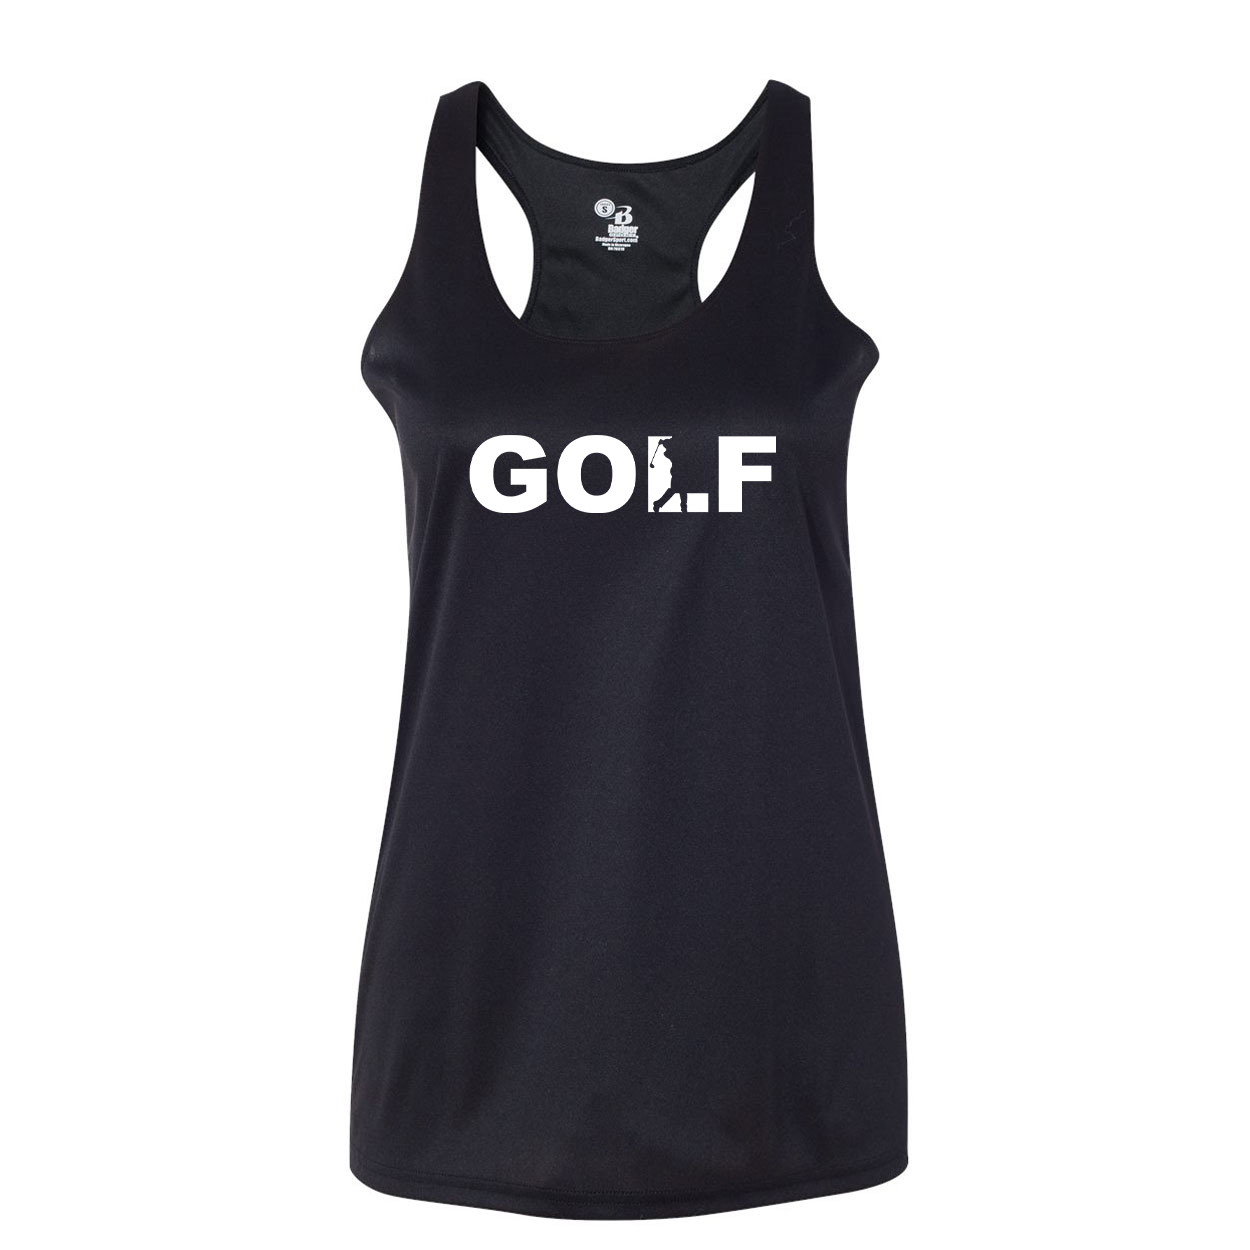 Golf Swing Logo Classic Womens Performance Racerback Tank Top Black (White Logo)